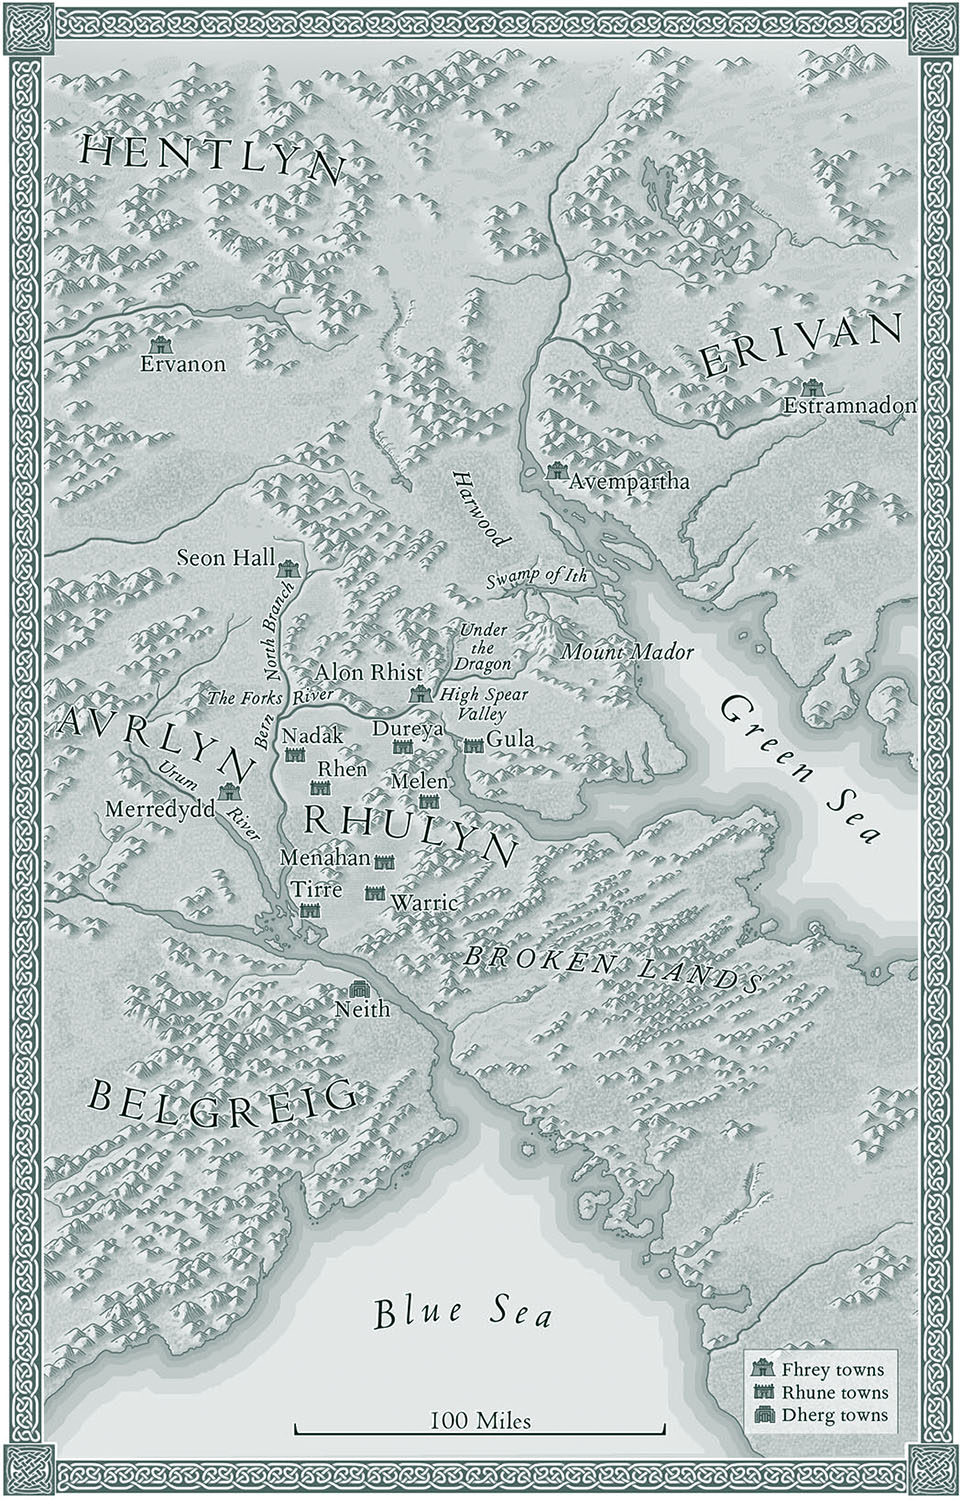 For    Age of Myth,      by Michael J. Sullivan   (Del Rey, 2016).   Map copyright © David Lindroth Inc. A imaginary world, fleshed out from the author's sketch.